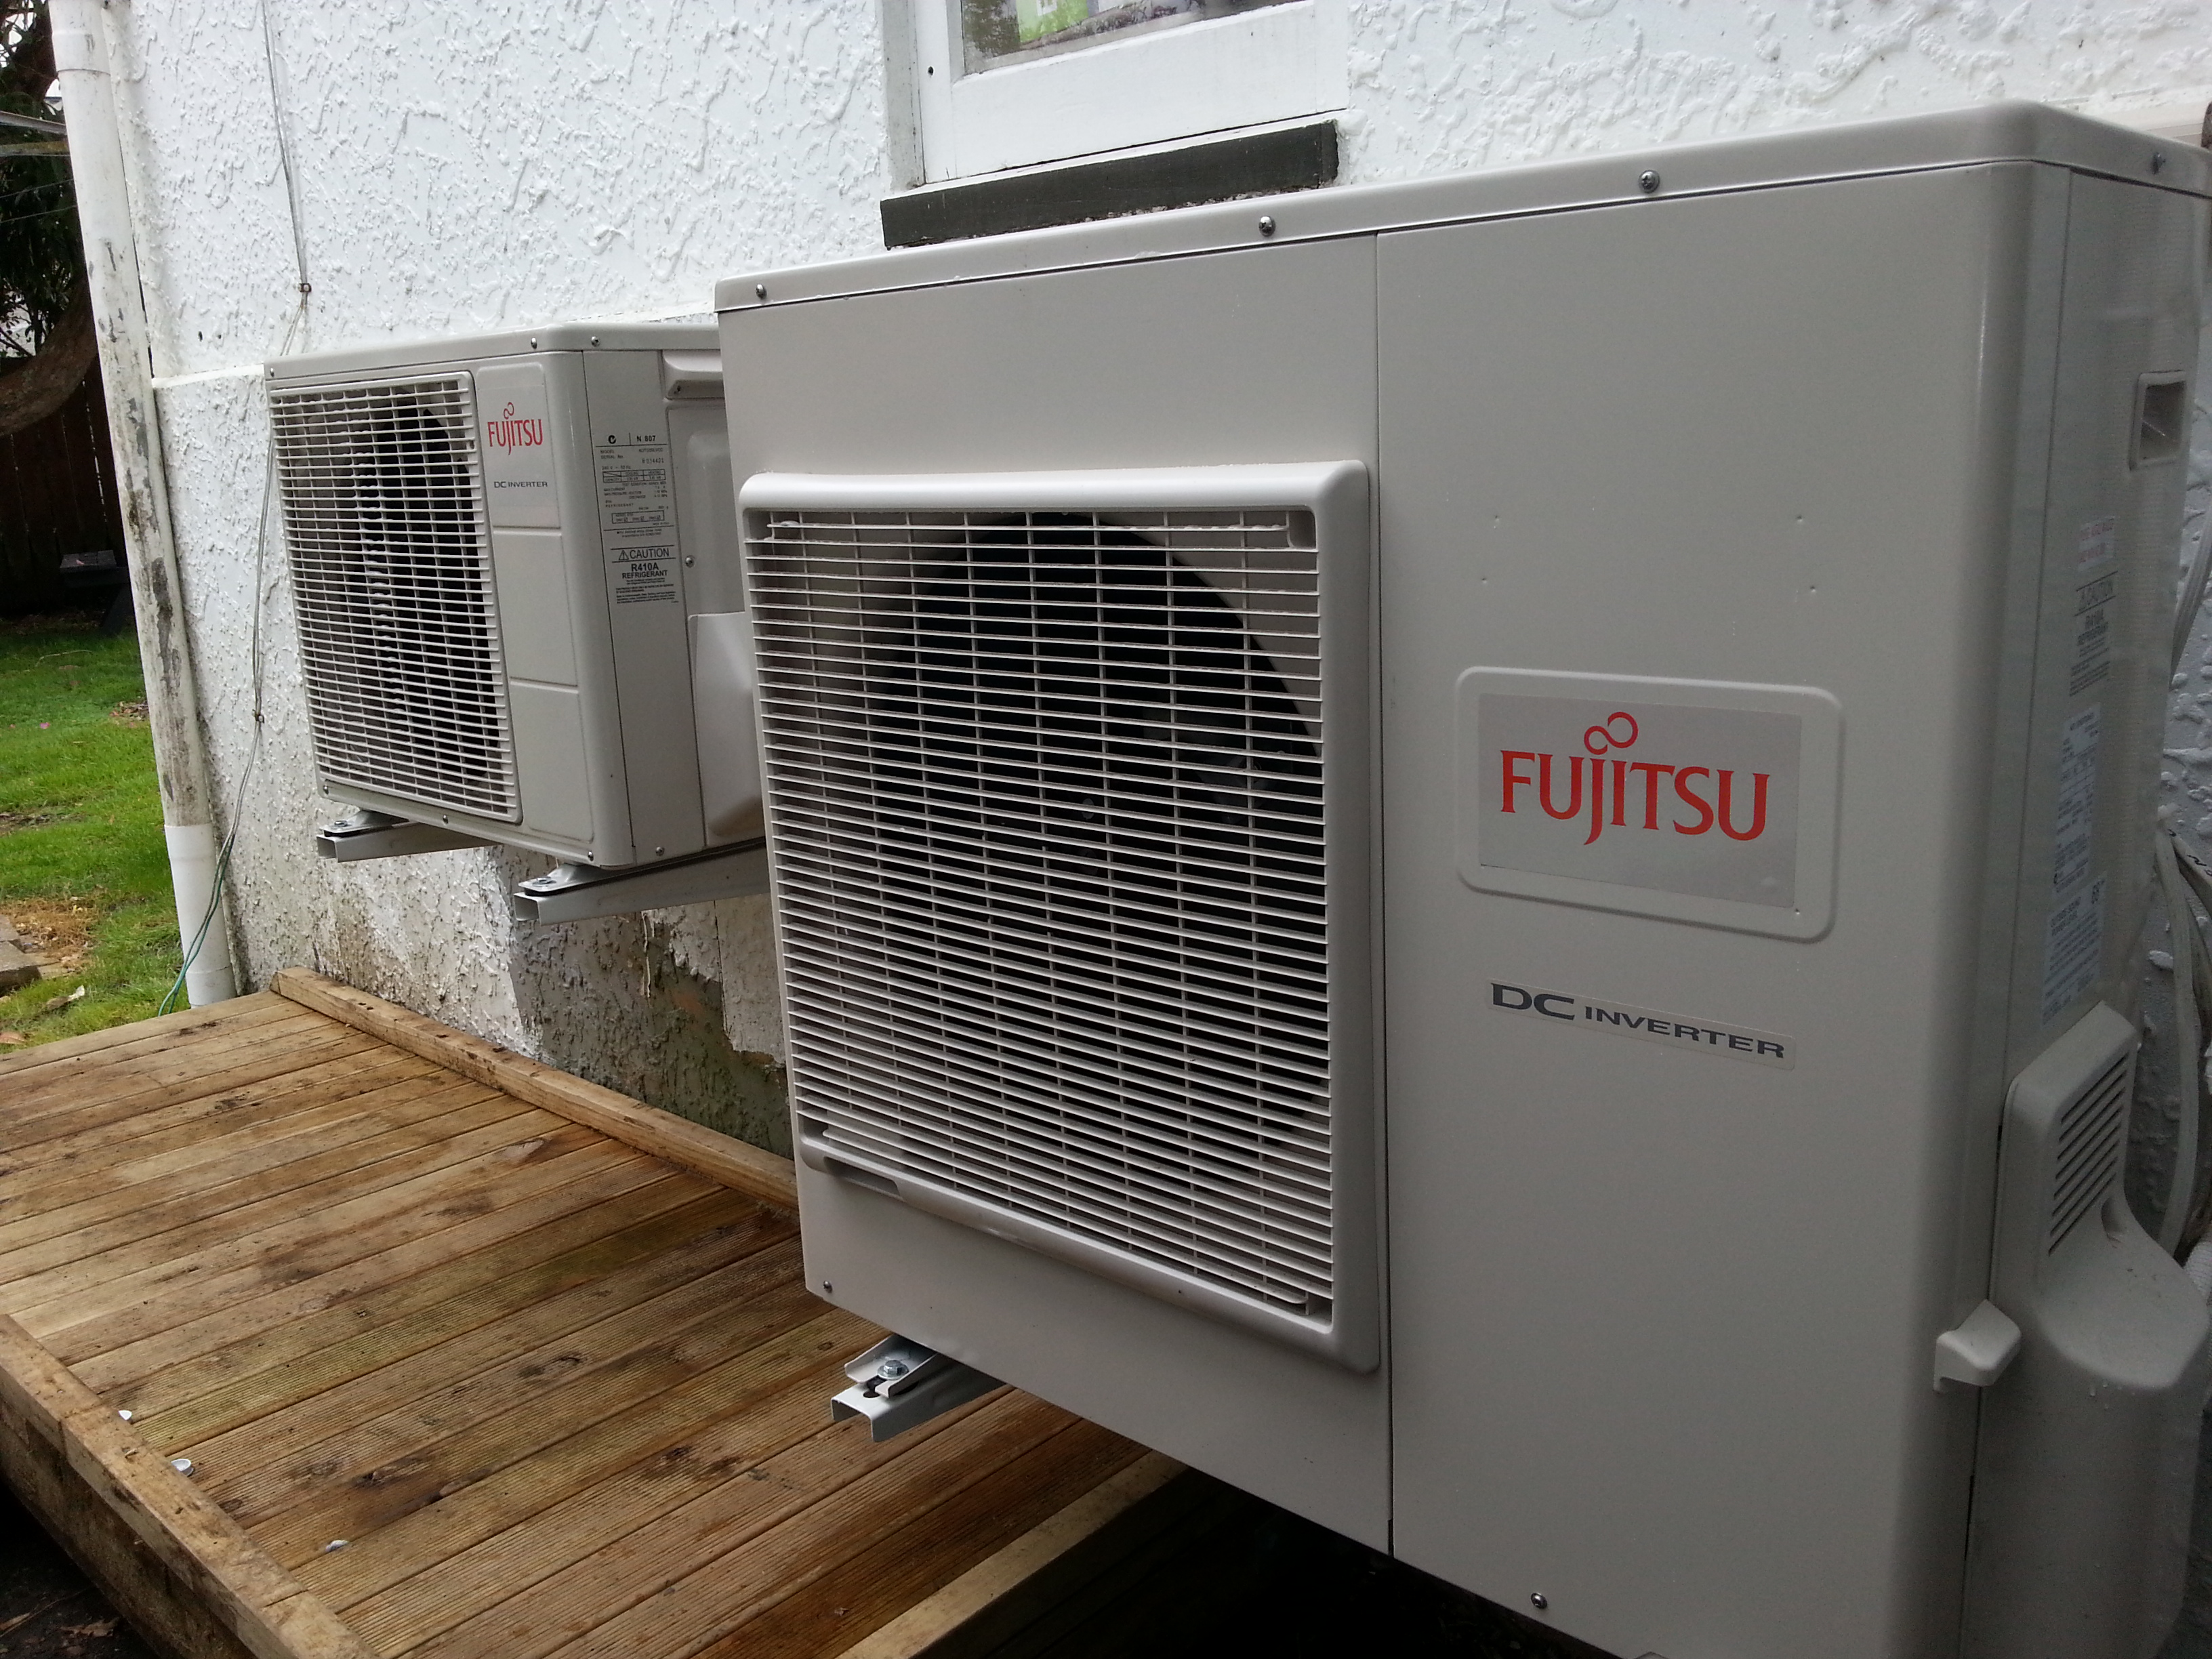 #4E5F2F Heat Pump Installation Auckland Air Conditioning  Highly Rated 9619 Hire Air Conditioning Units Auckland wallpapers with 3264x2448 px on helpvideos.info - Air Conditioners, Air Coolers and more